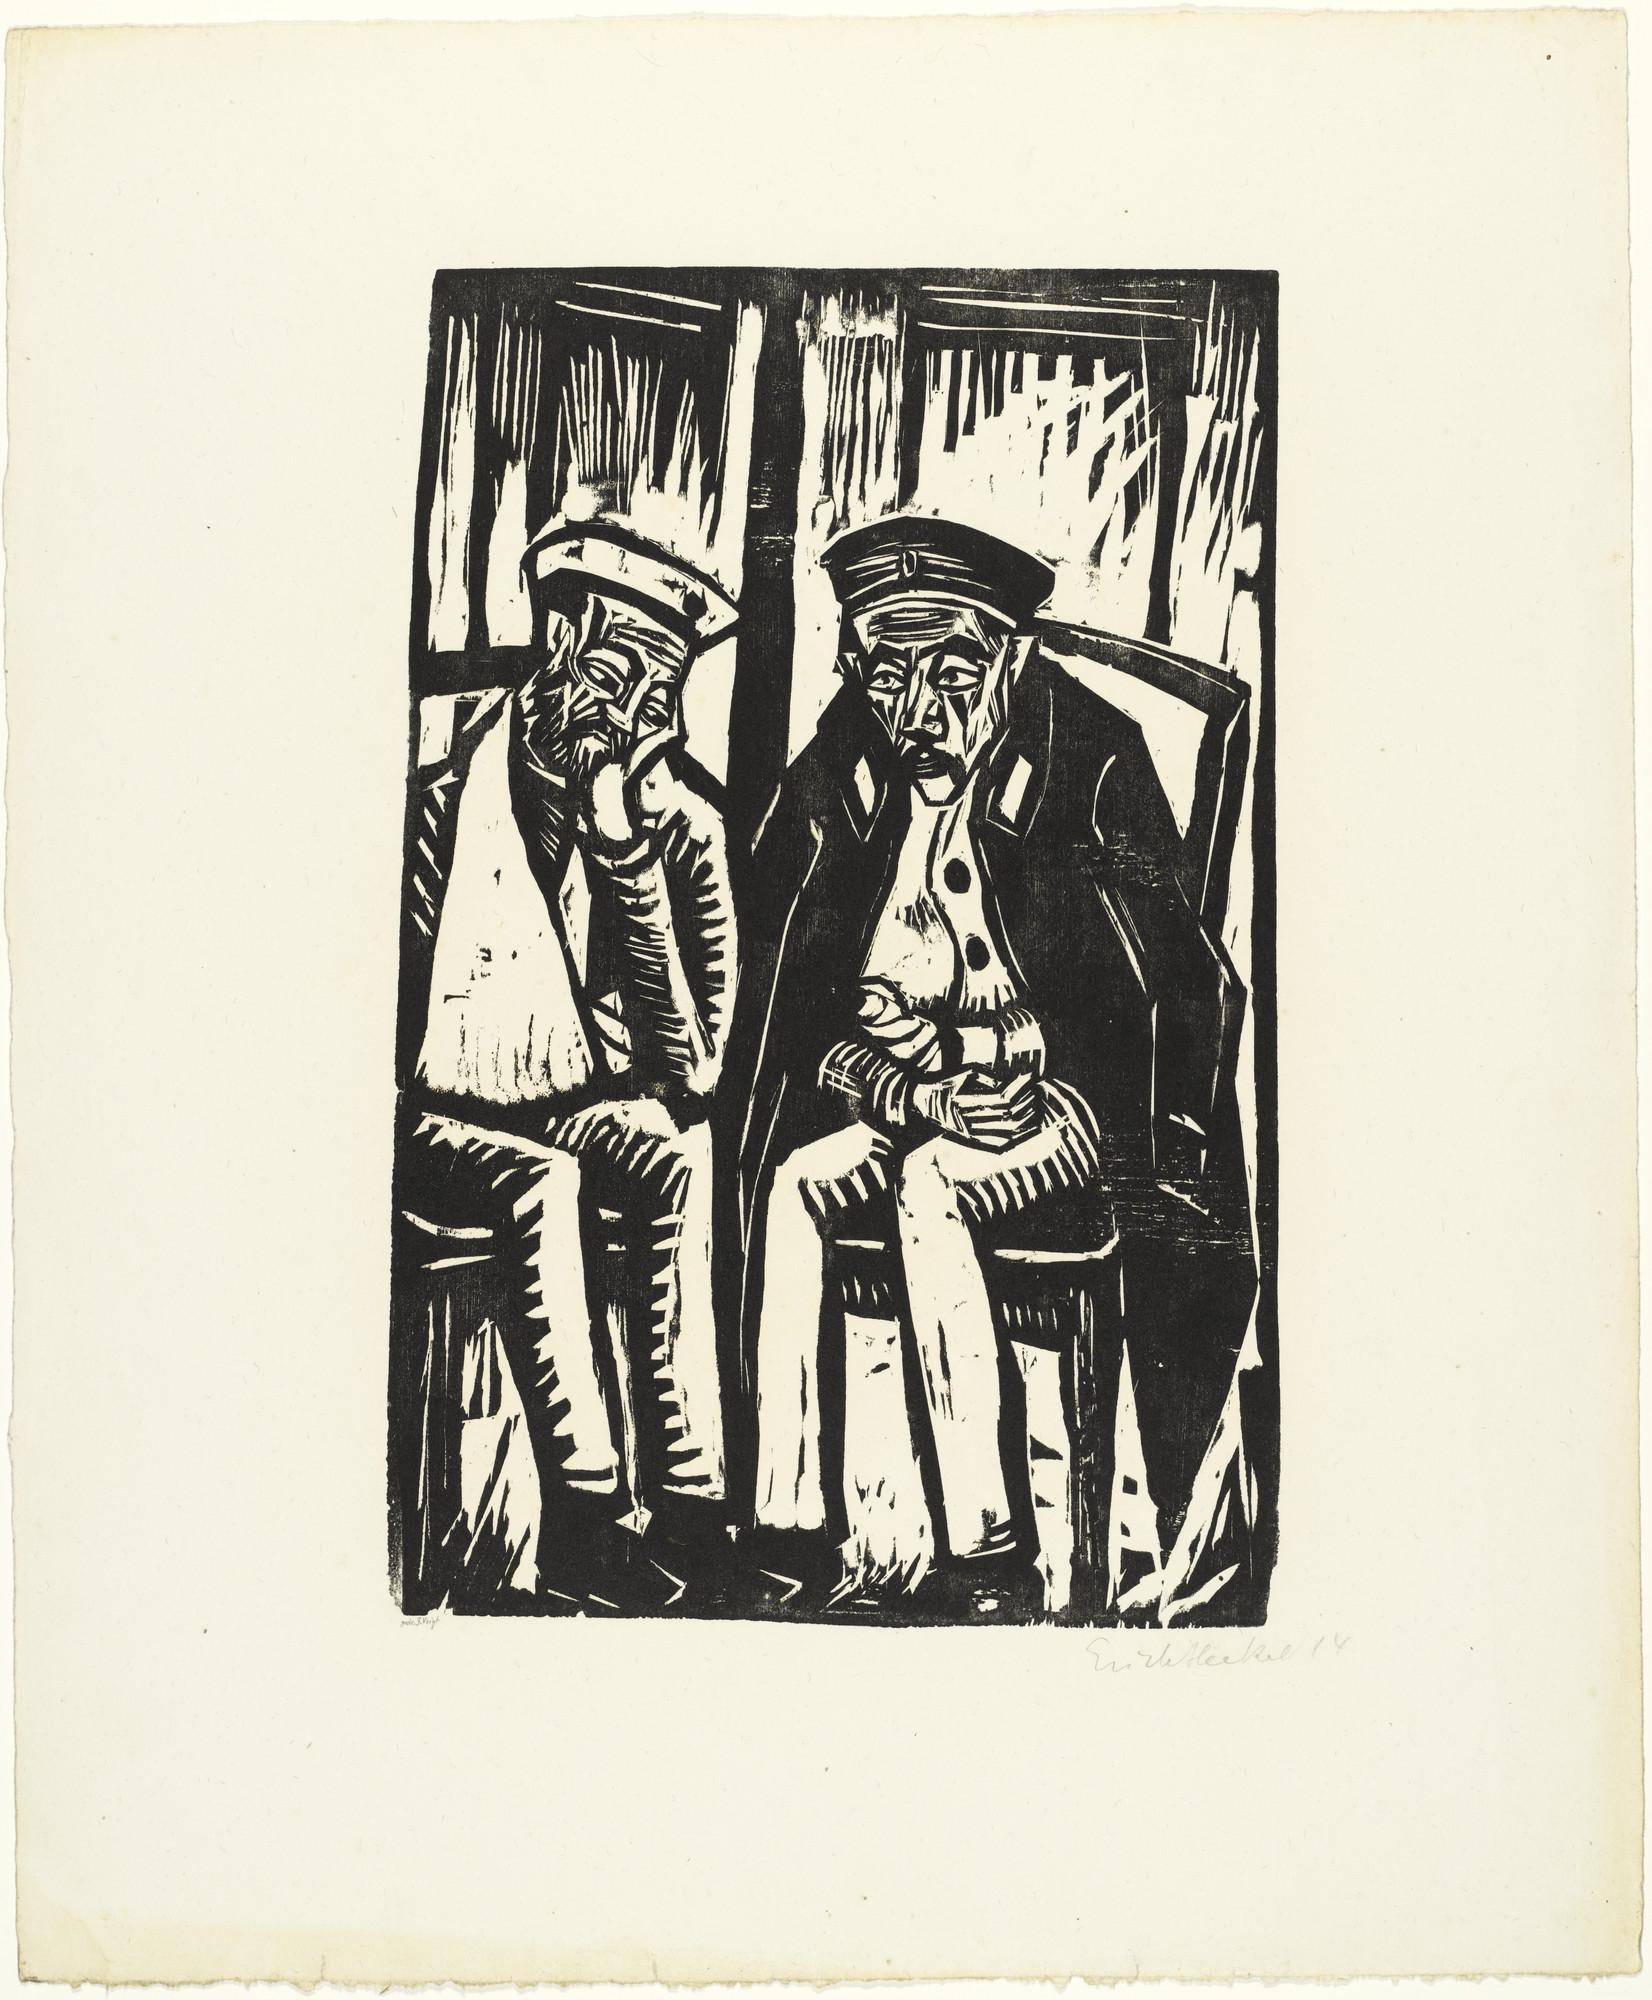 Erich Heckel. Two Wounded Soldiers (Zwei Verwundete) from the portfolio Eleven Woodcuts, 1912-1919 (Elf Holzschnitte, 1912-1919). 1914 (published 1921)